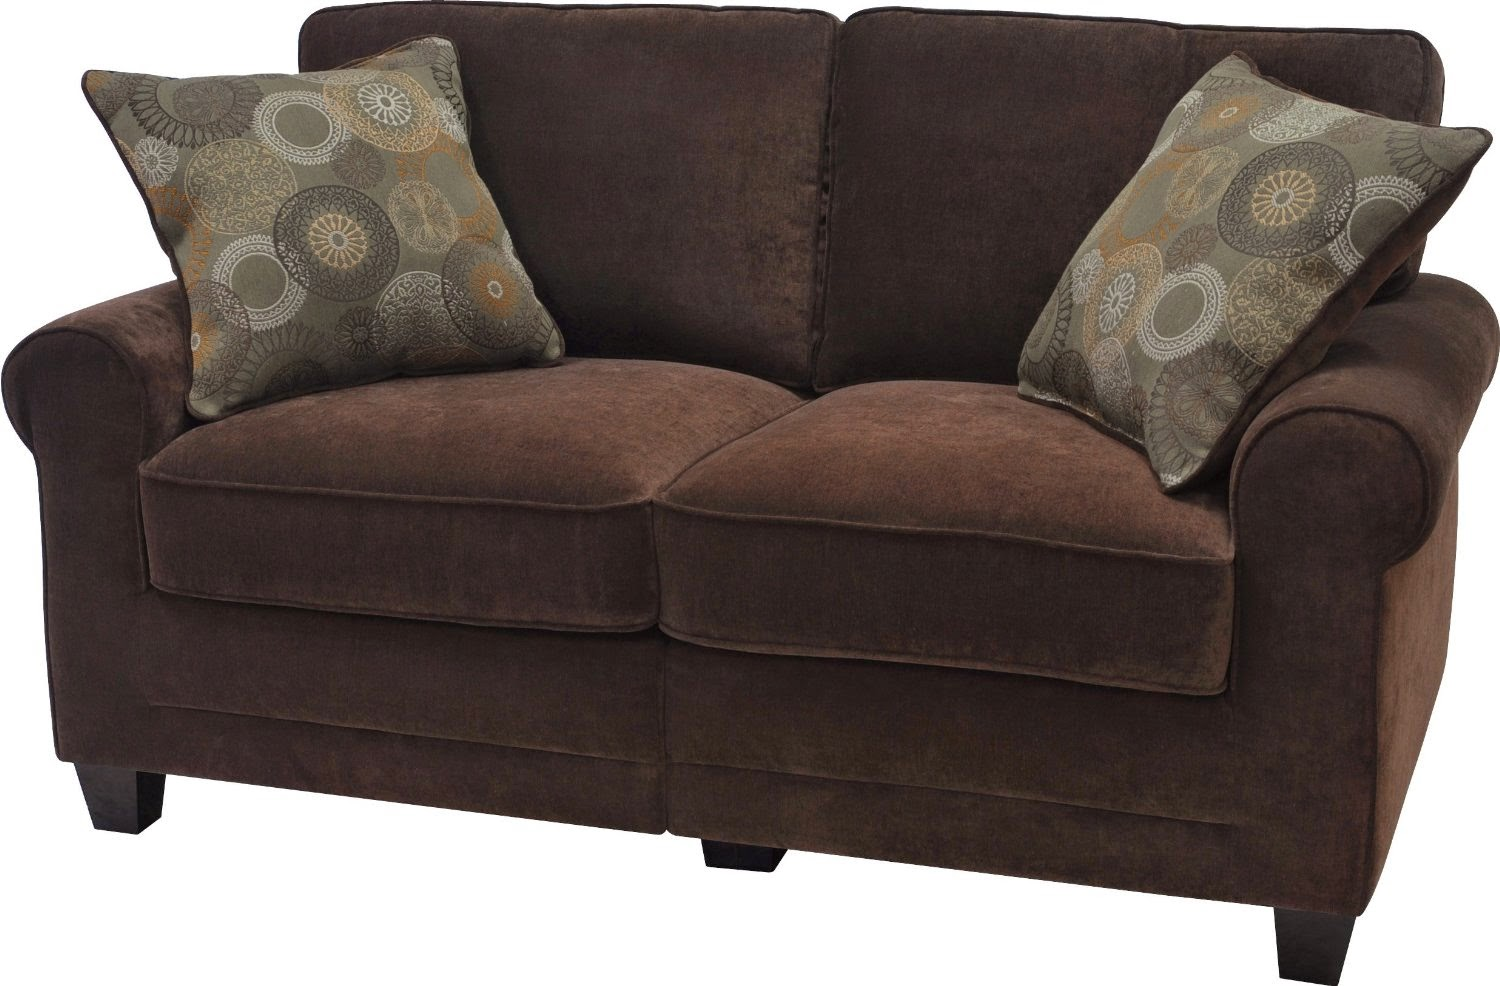 Serta Sofa And Loveseat Serta Sofas Loveseats Living Room Furniture The Home Depot Thesofa